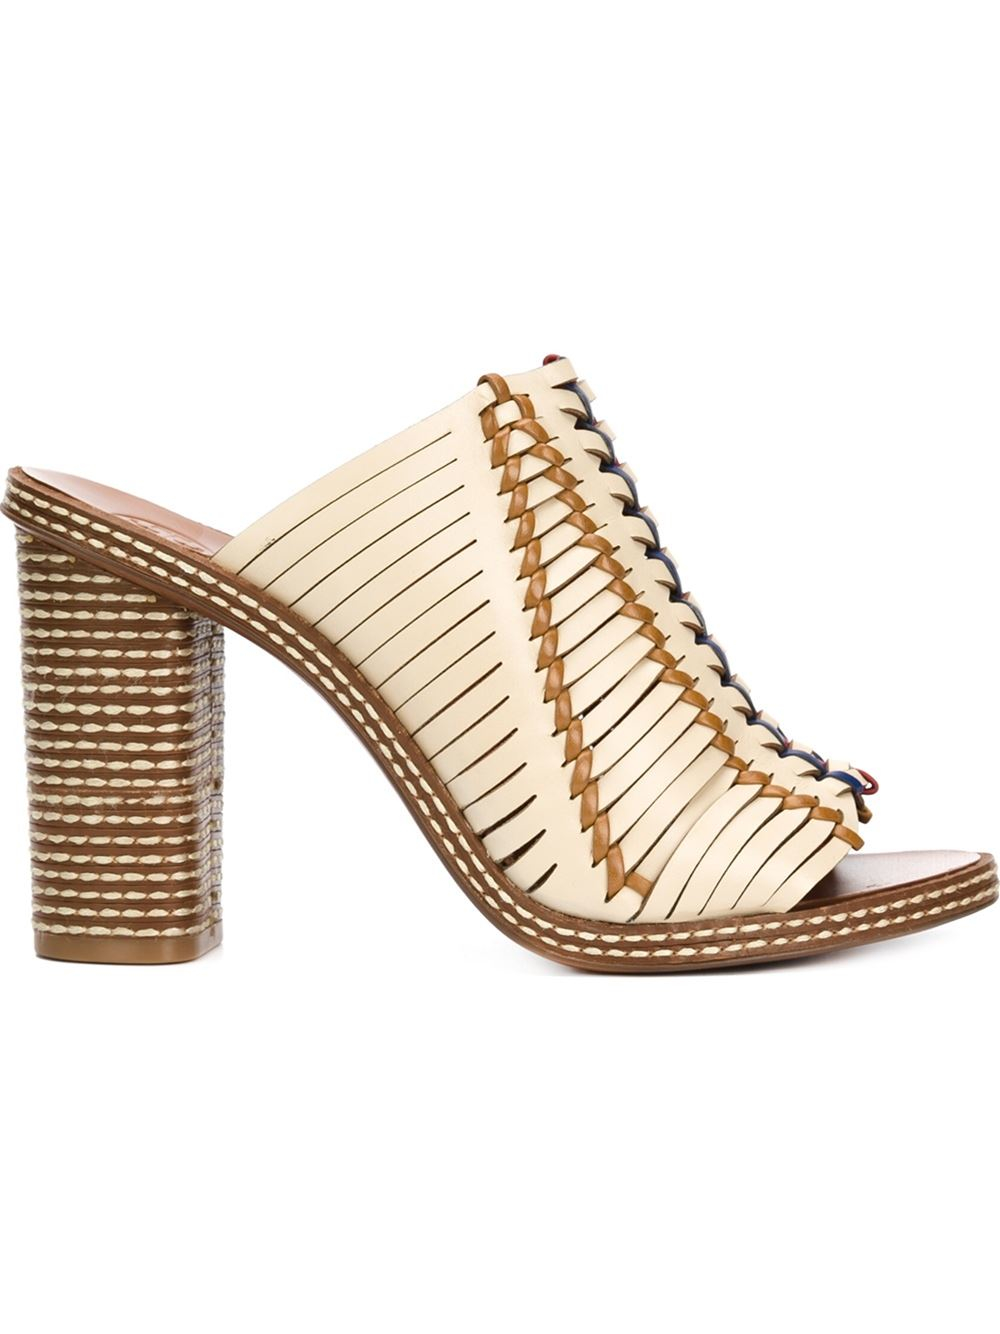 Lyst Tory Burch Woven Mules In Natural